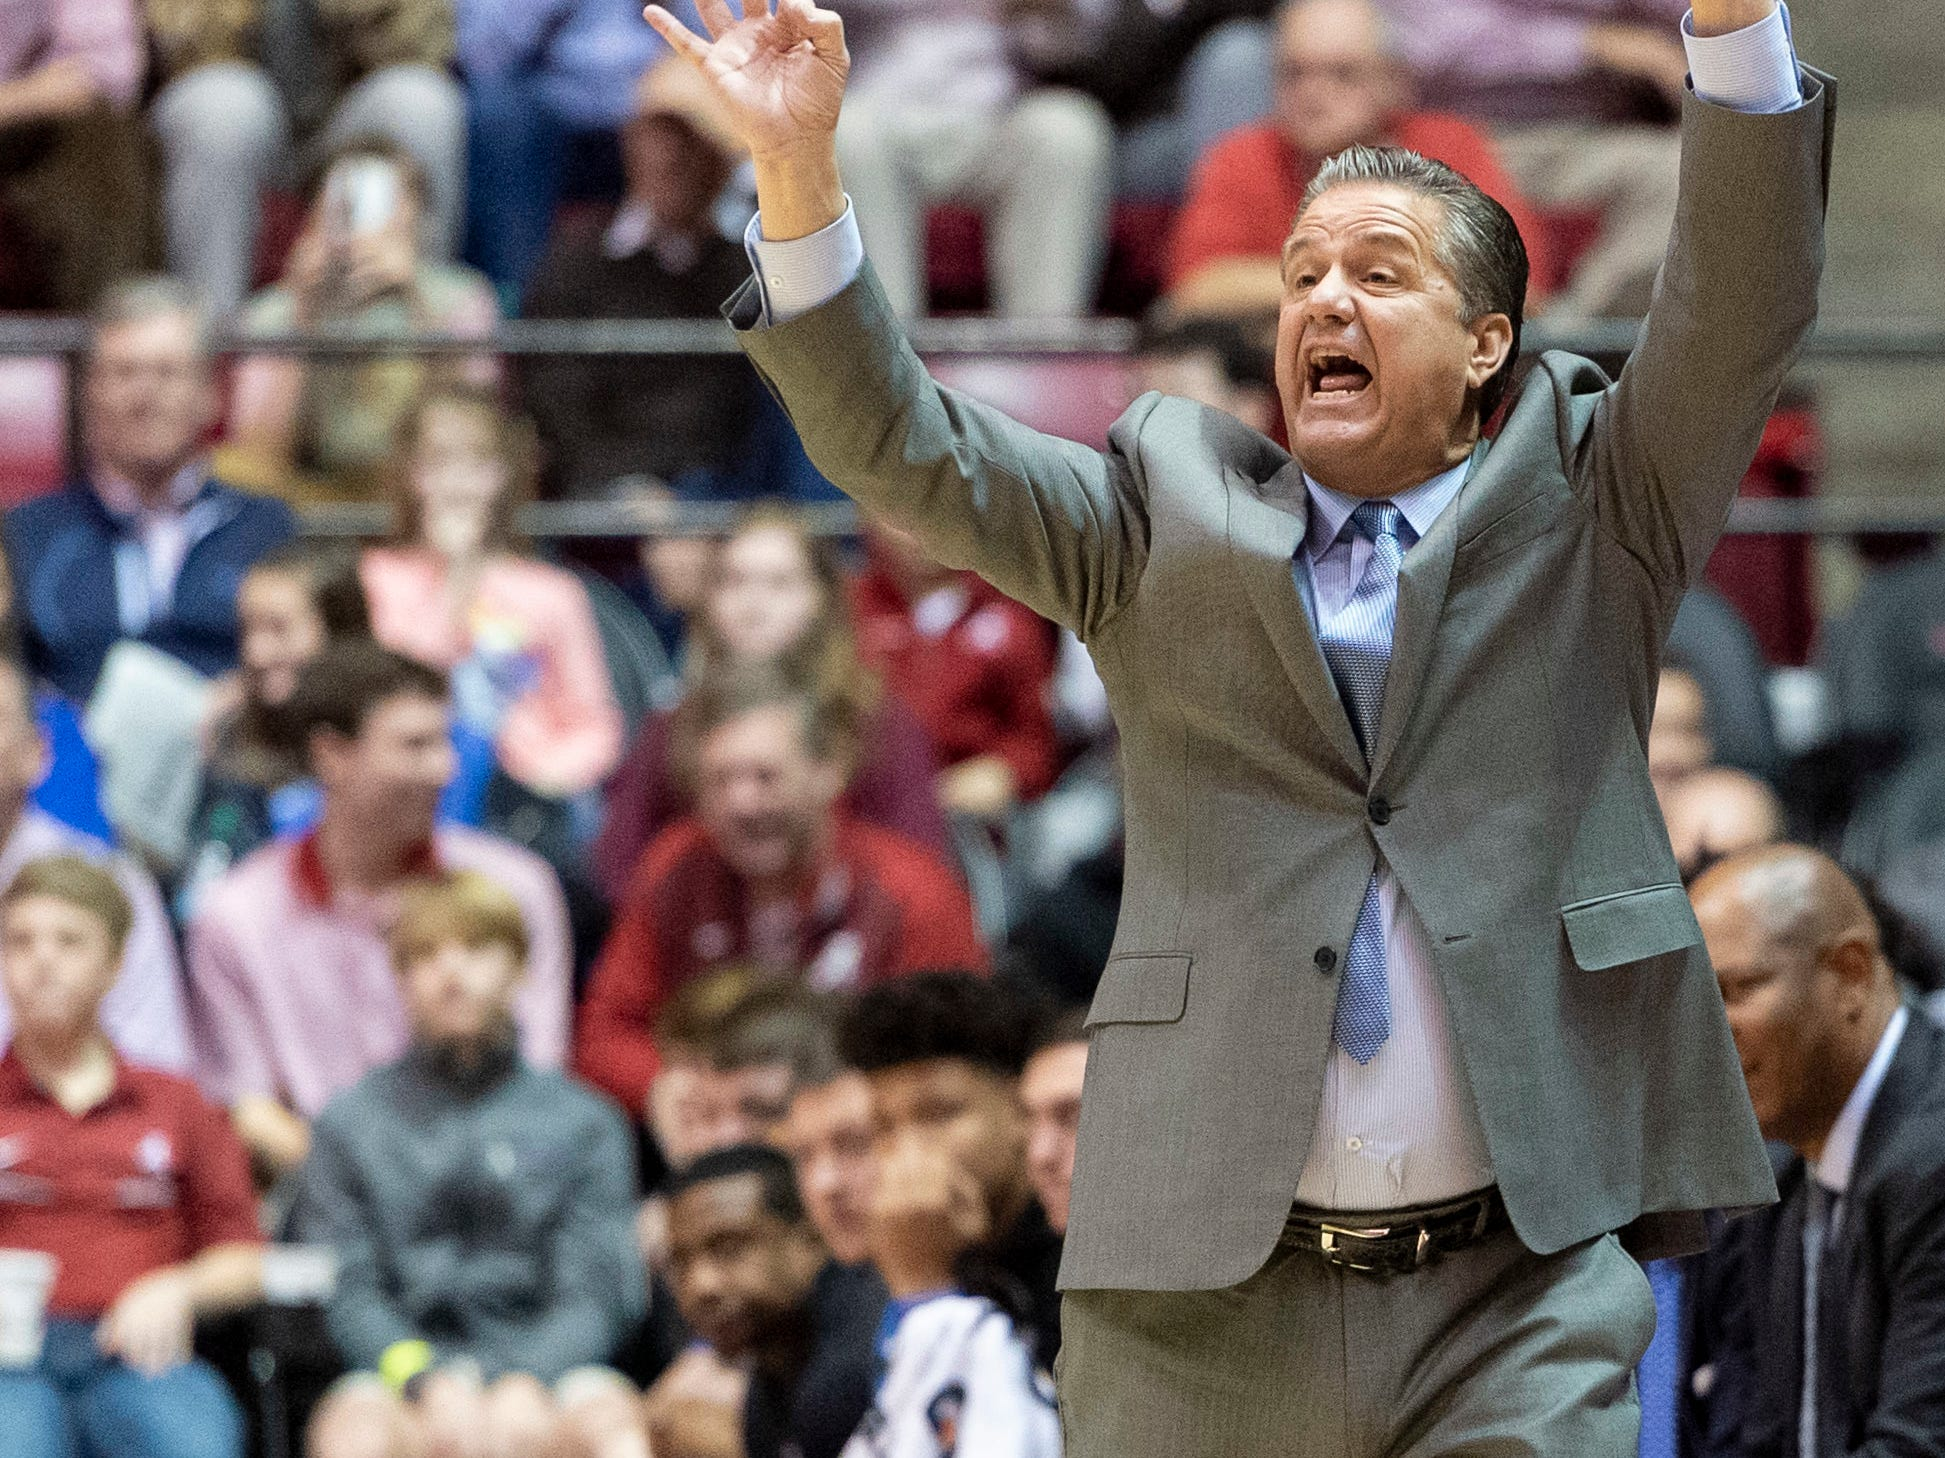 Kentucky head coach John Calipari signals against Alabama during the first half of an NCAA college basketball game, Saturday, Jan. 5, 2019, in Tuscaloosa, Ala.